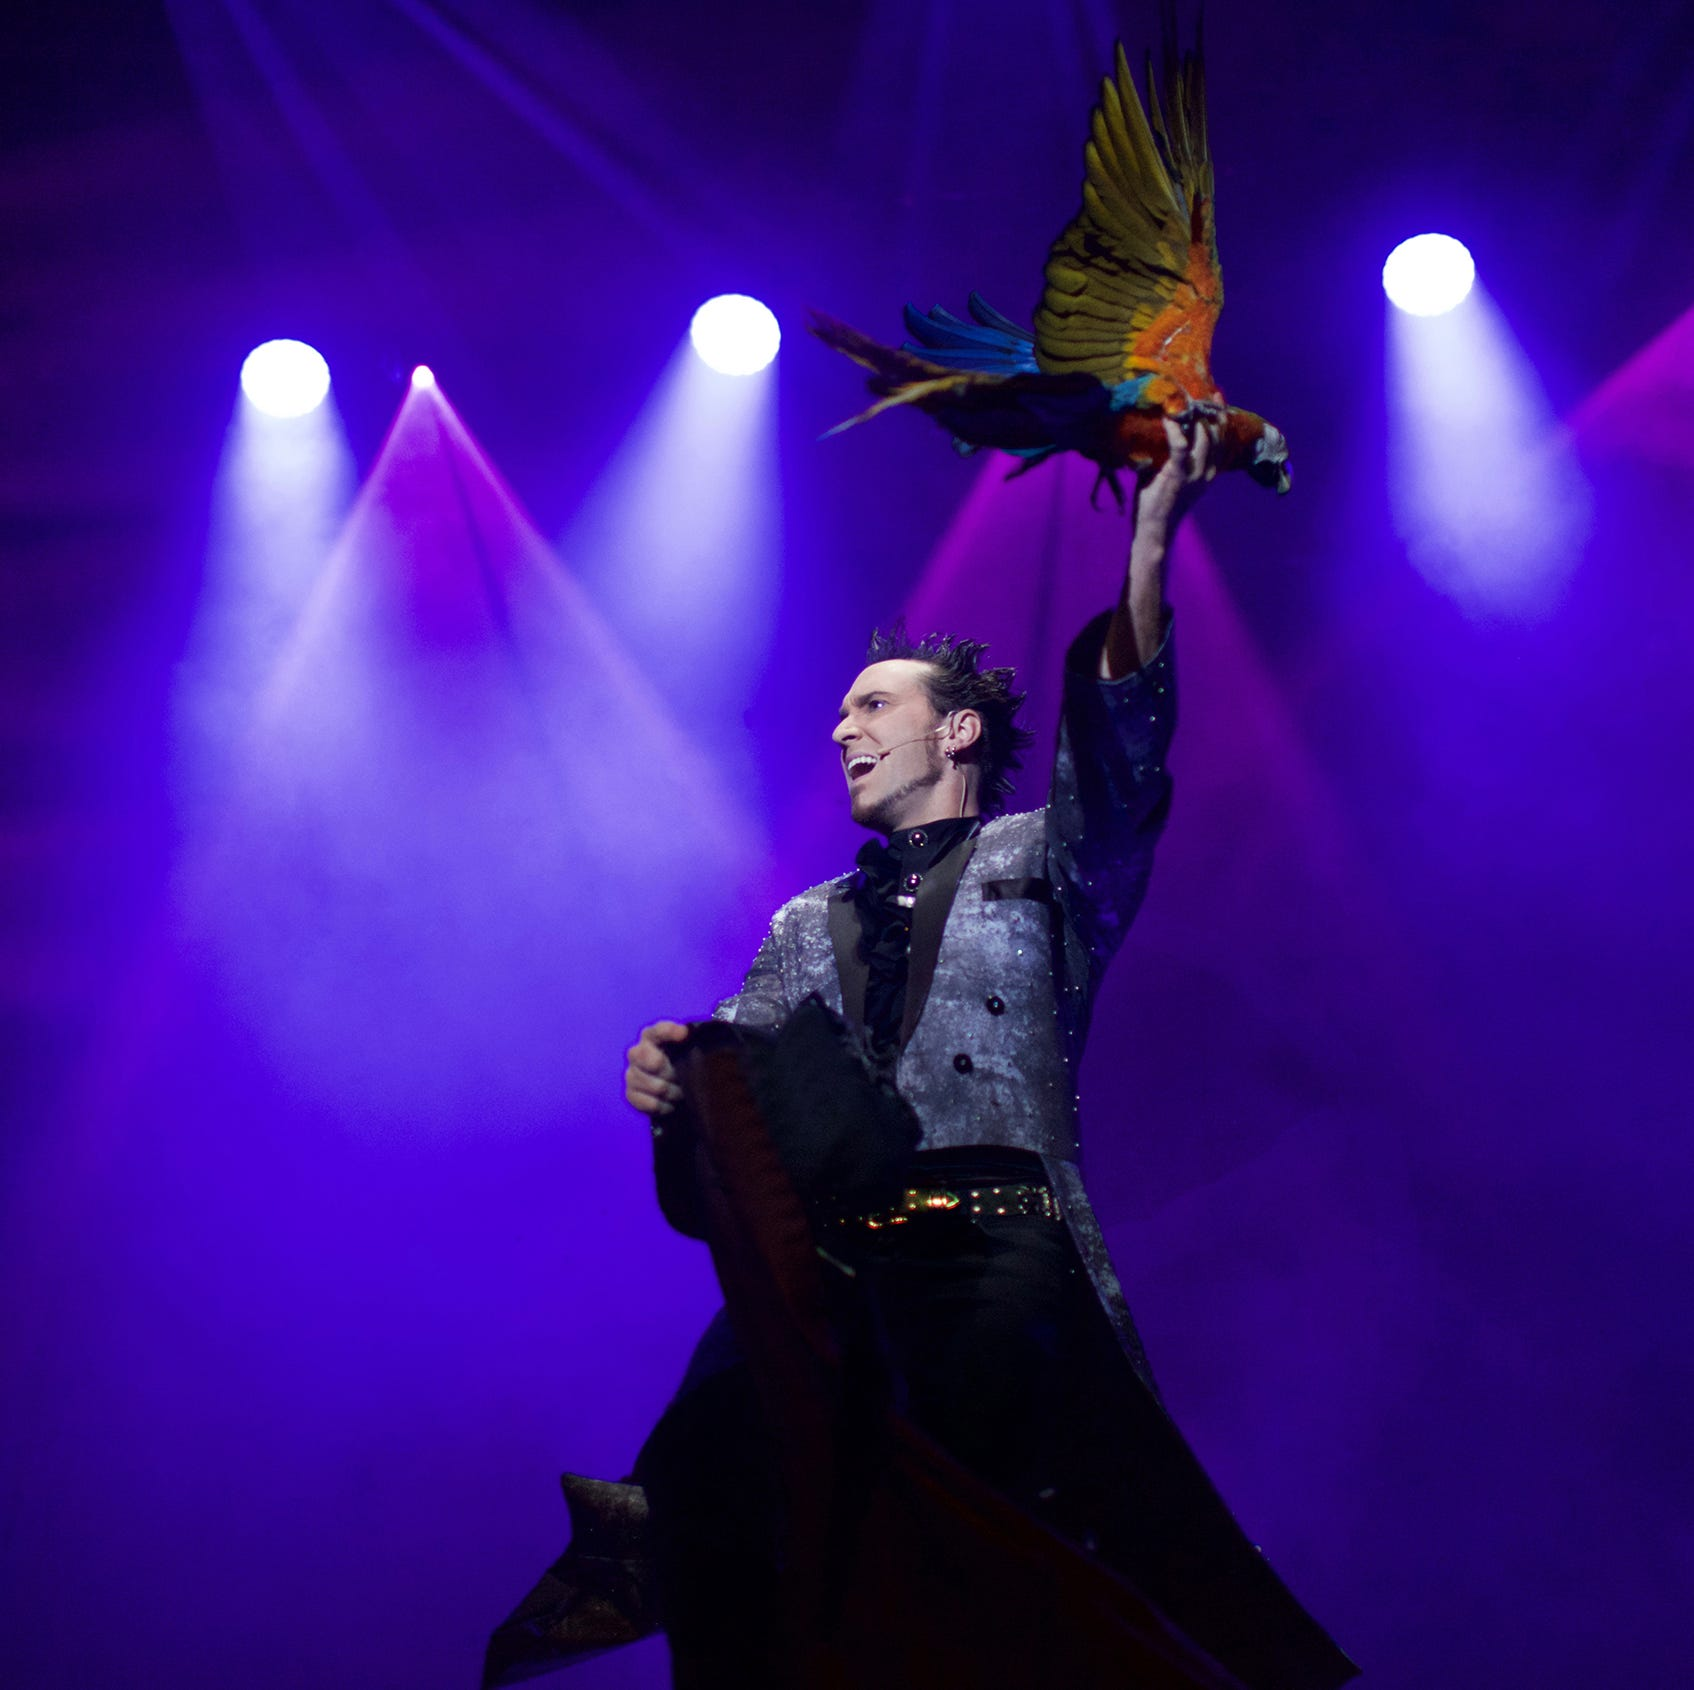 Sheboygan Weill Center brings magician David DaVinci, 'Thrillusionist,' Nov. 8